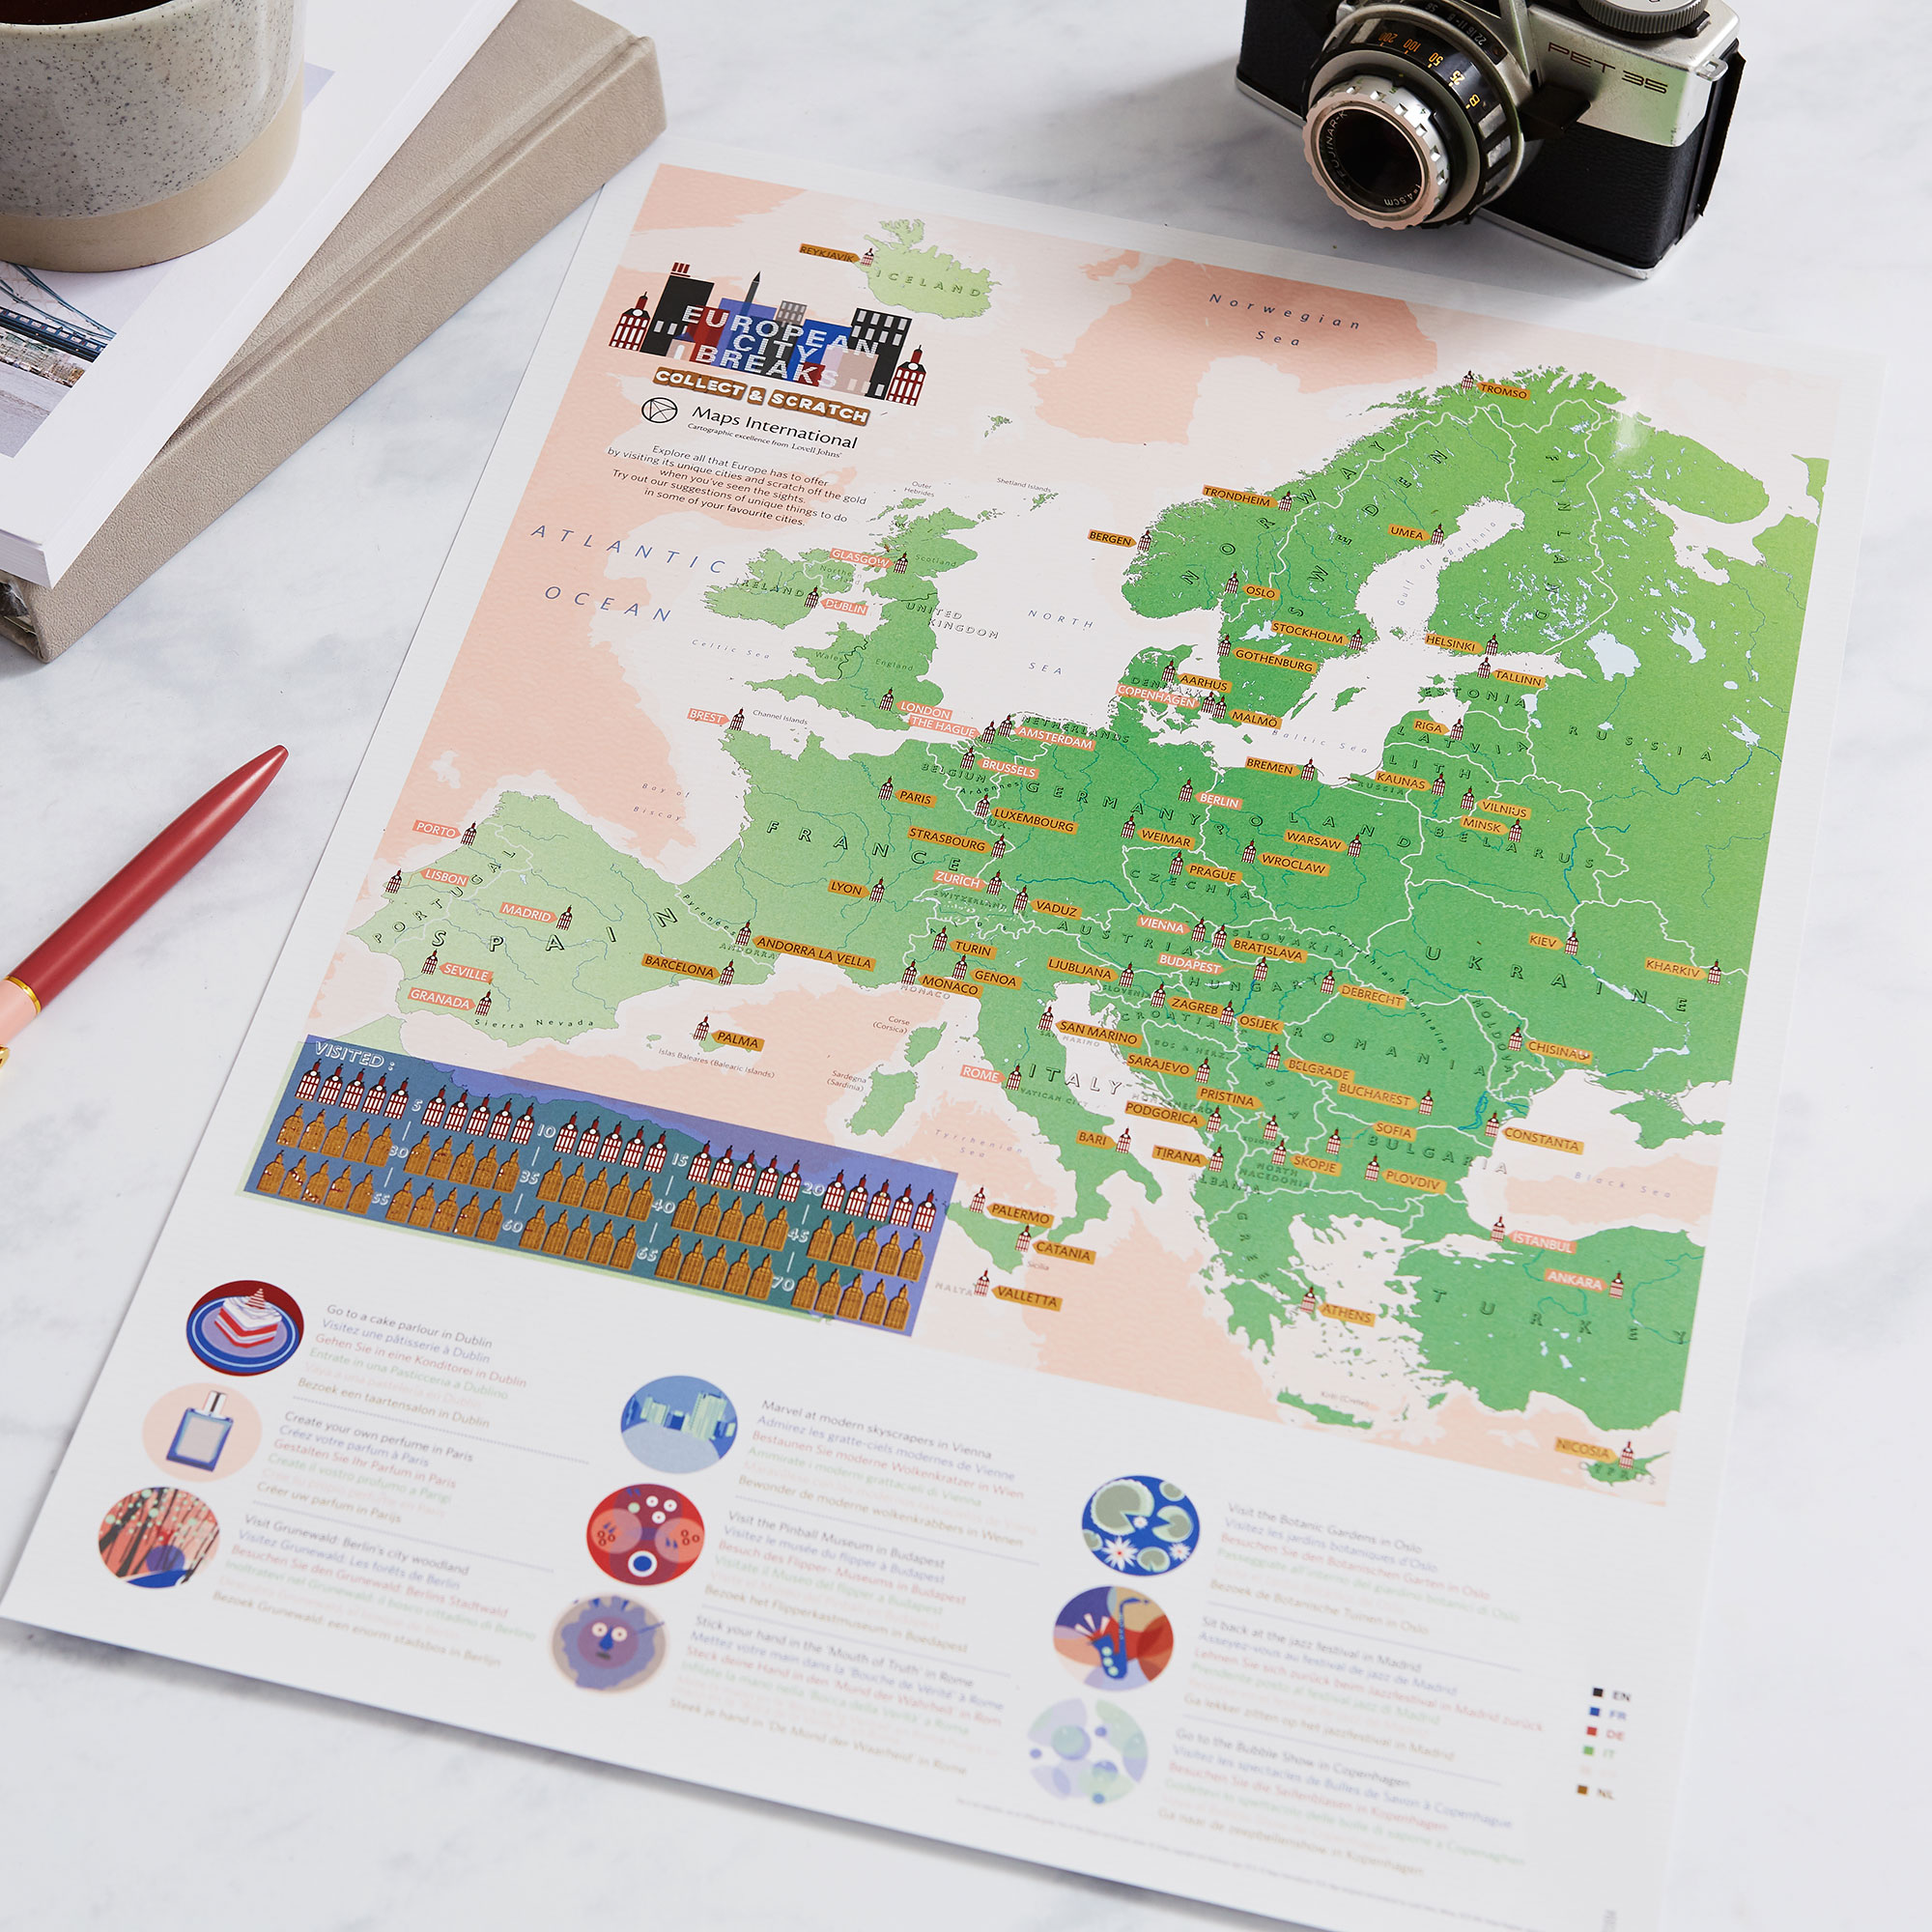 Scratch Off European City Breaks Map Print